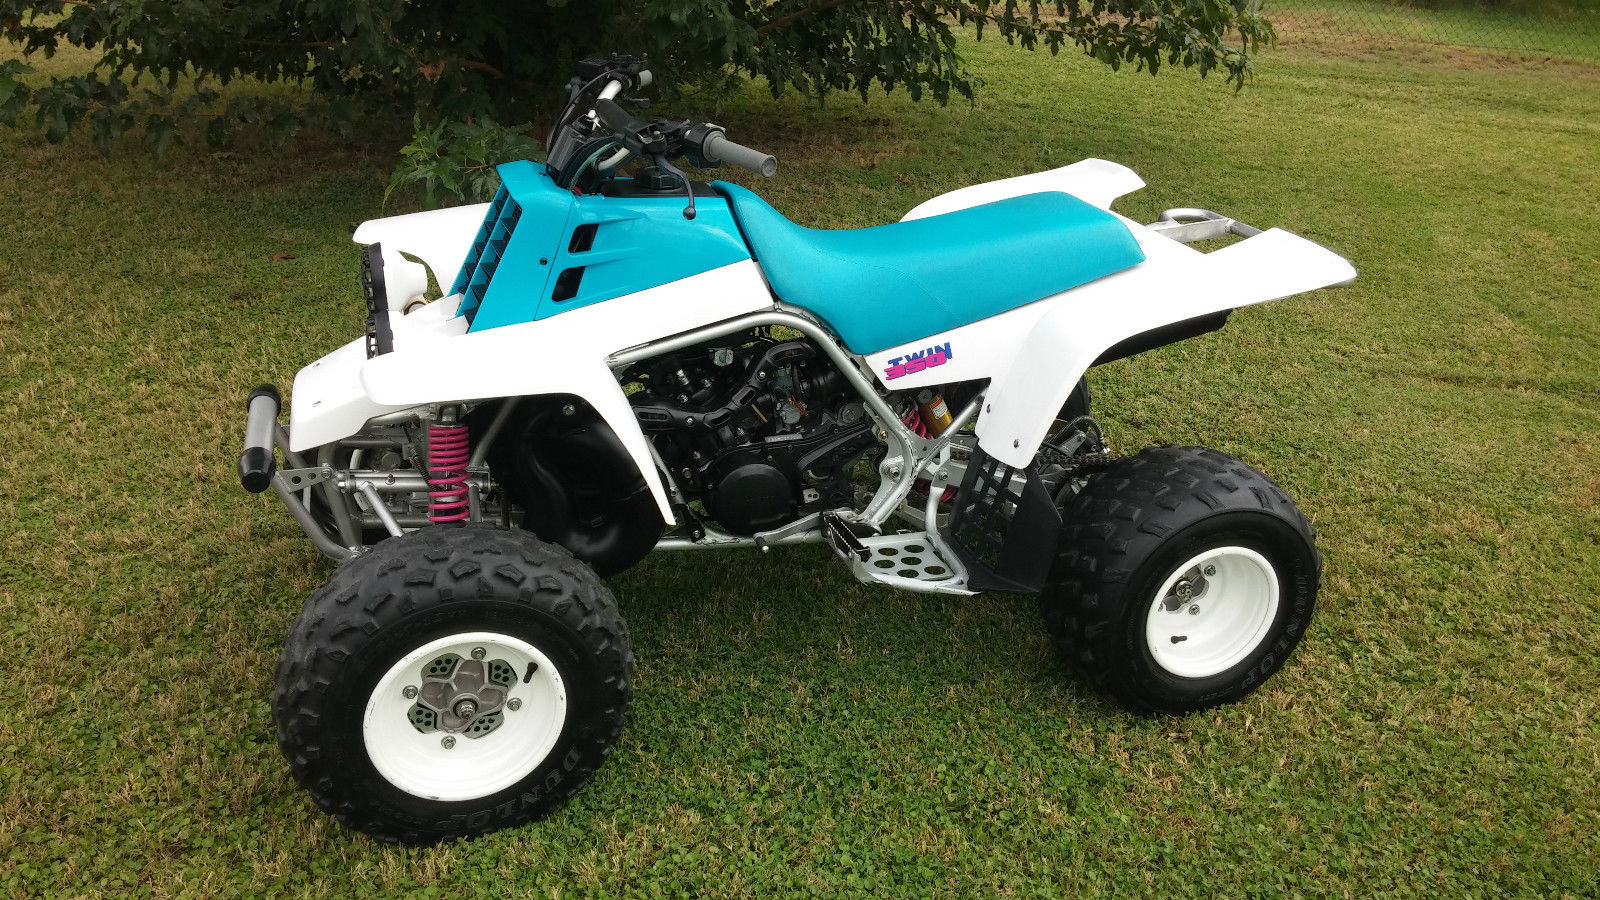 1992 Yamaha Banshee 2-stroke Photo: ebay